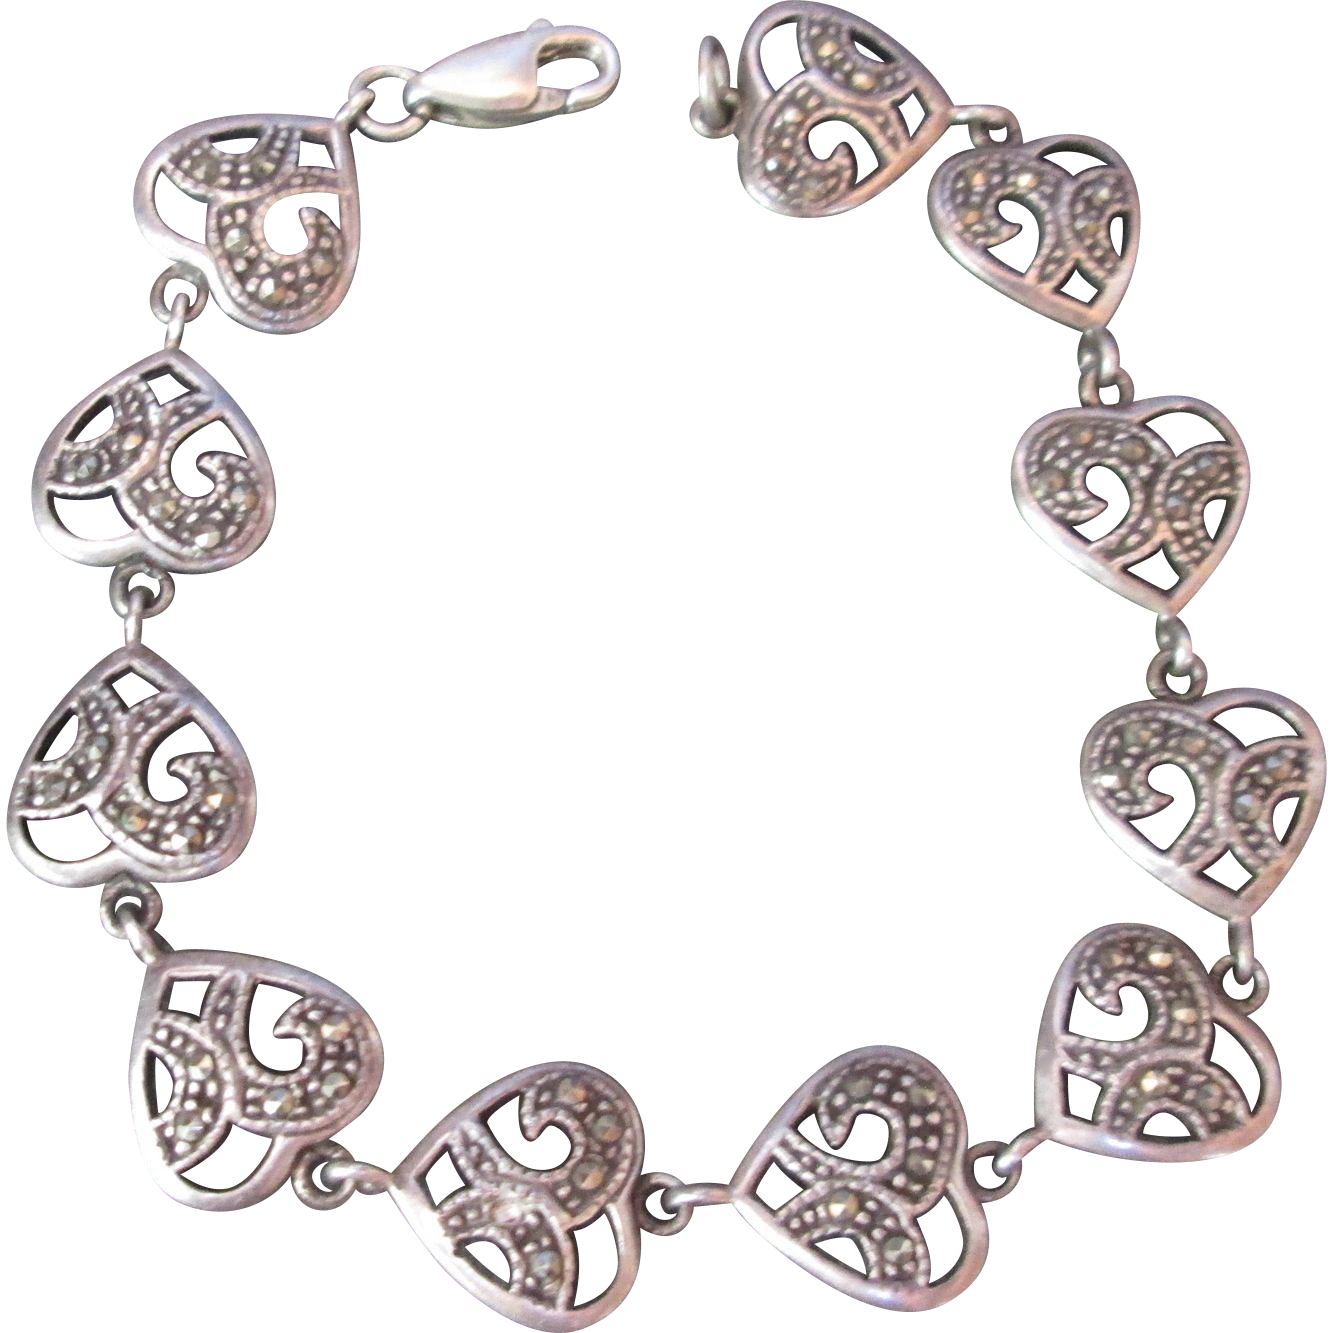 Exquisite Sterling Silver Heart Bracelet Marcasites Signed Vintage Valentine Sweetheart Theme